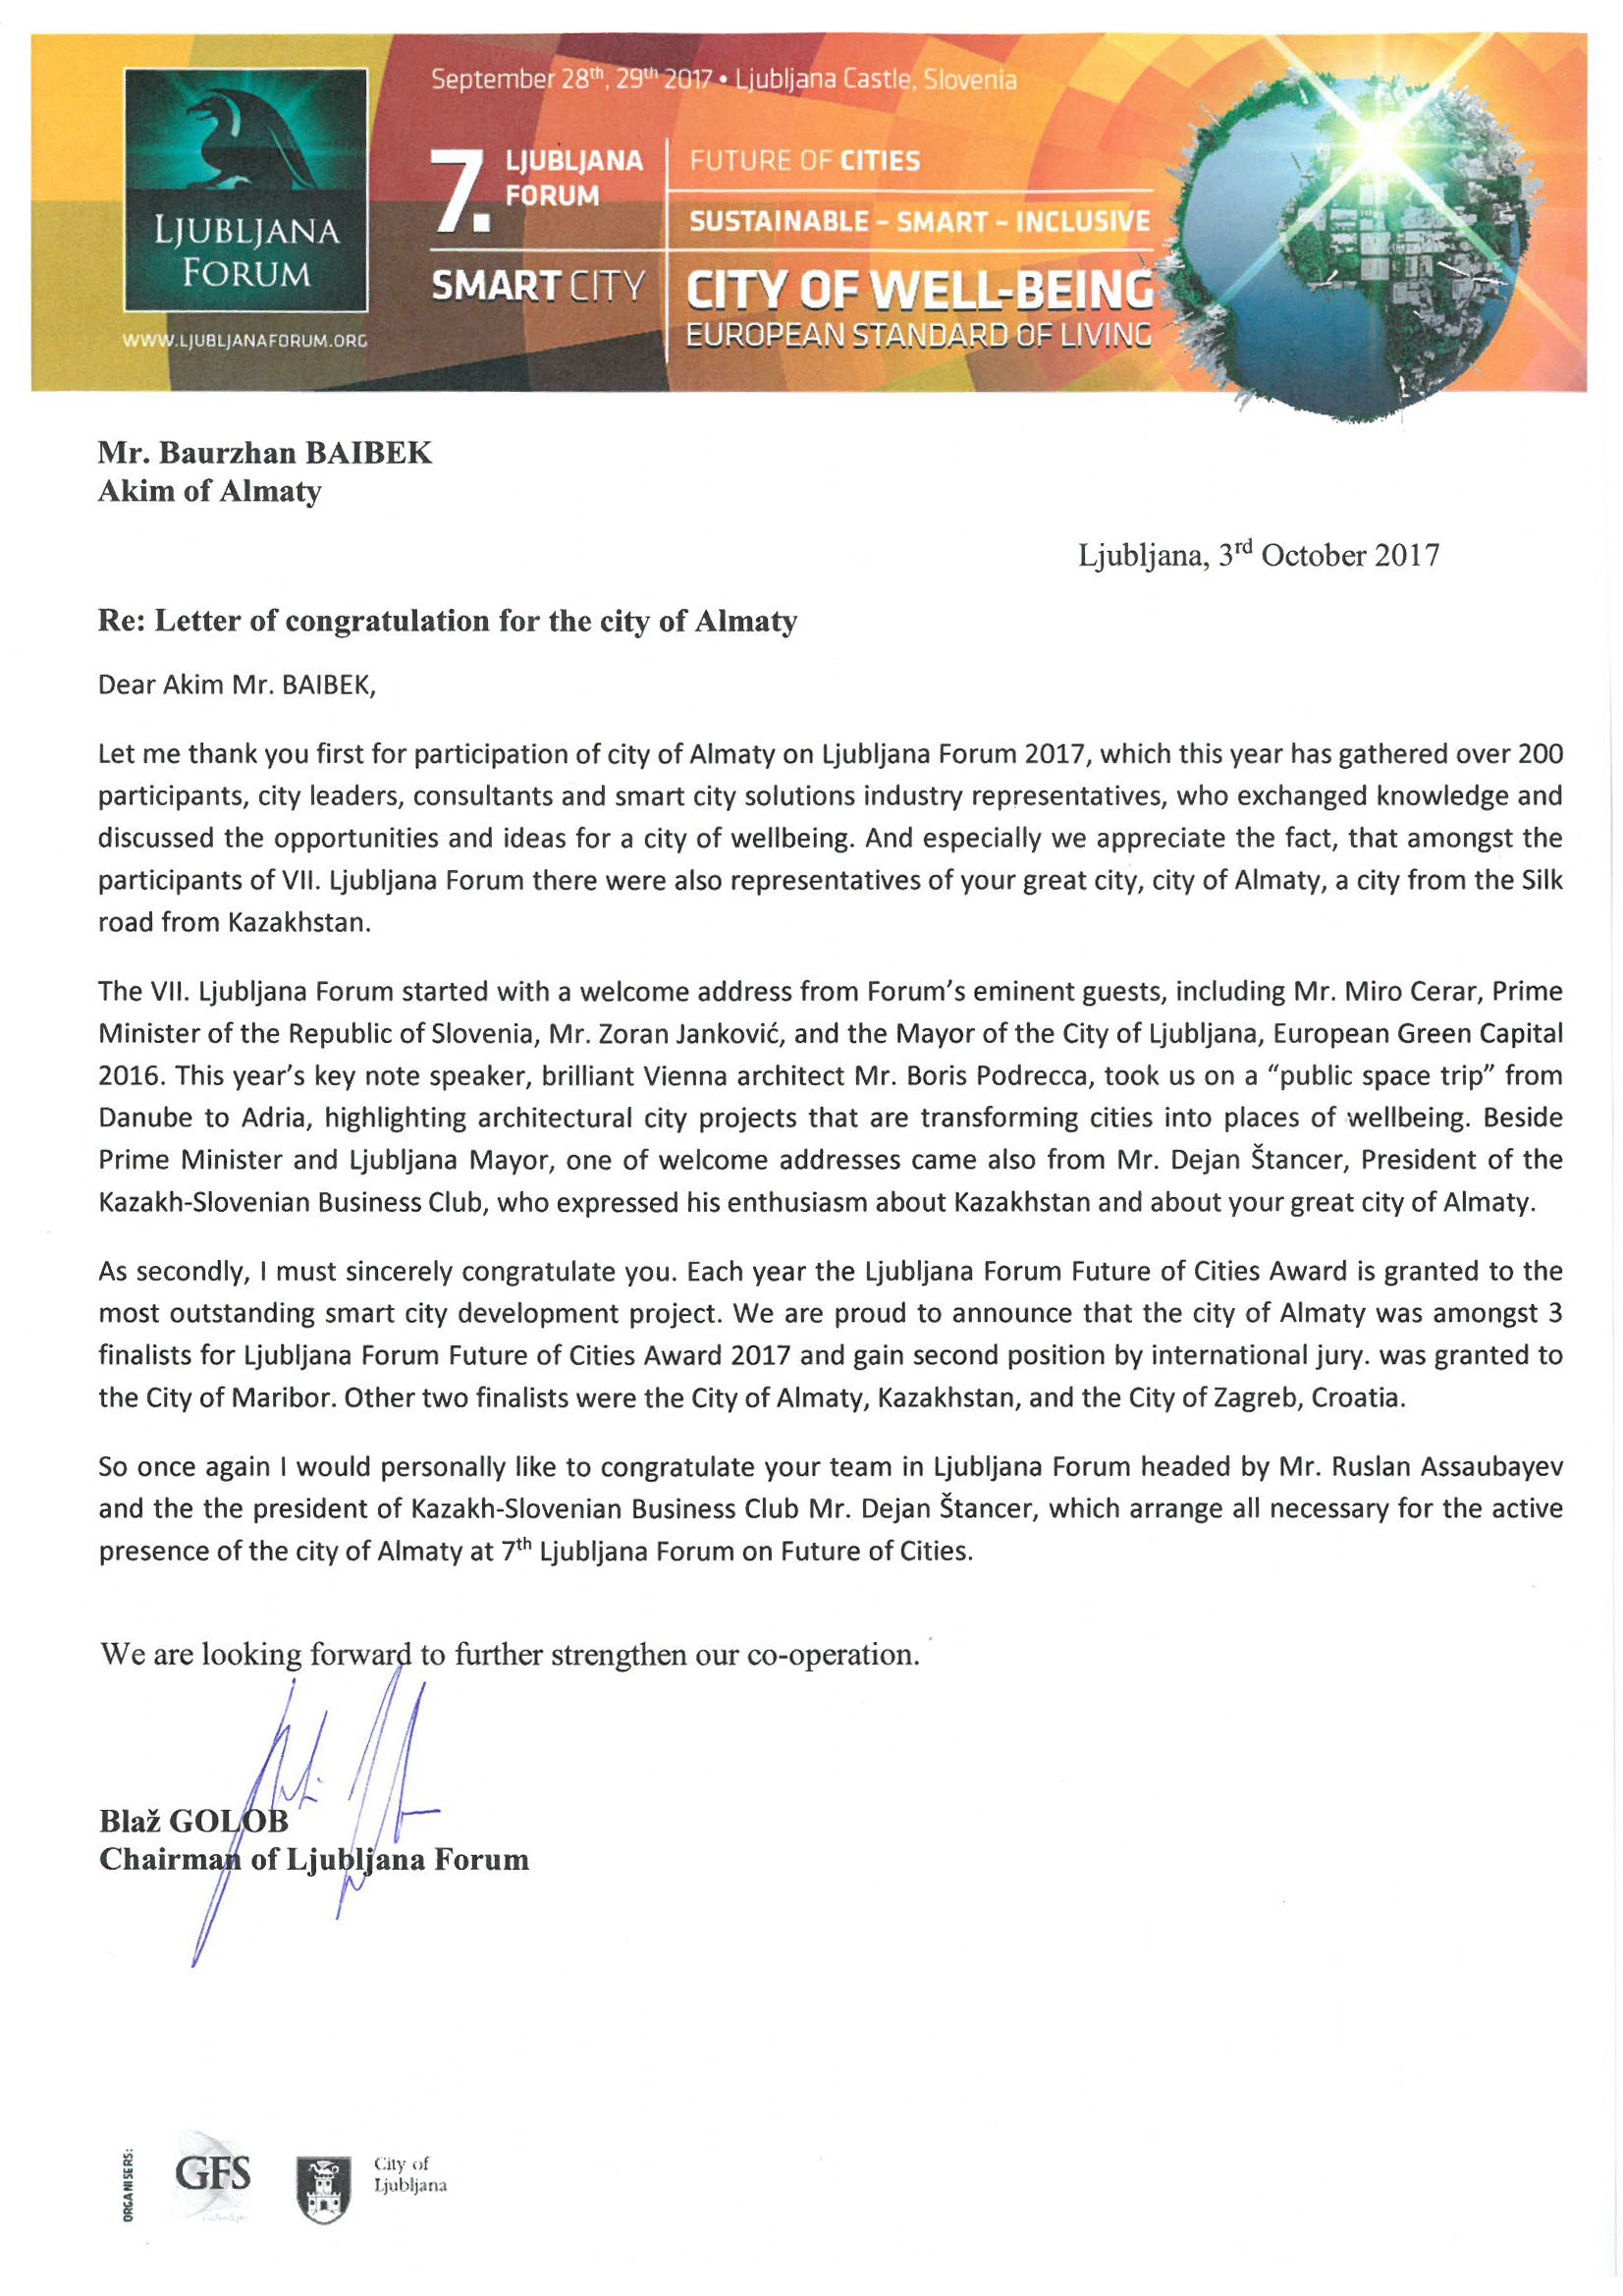 Letter of congradulation for the city of ALMATY